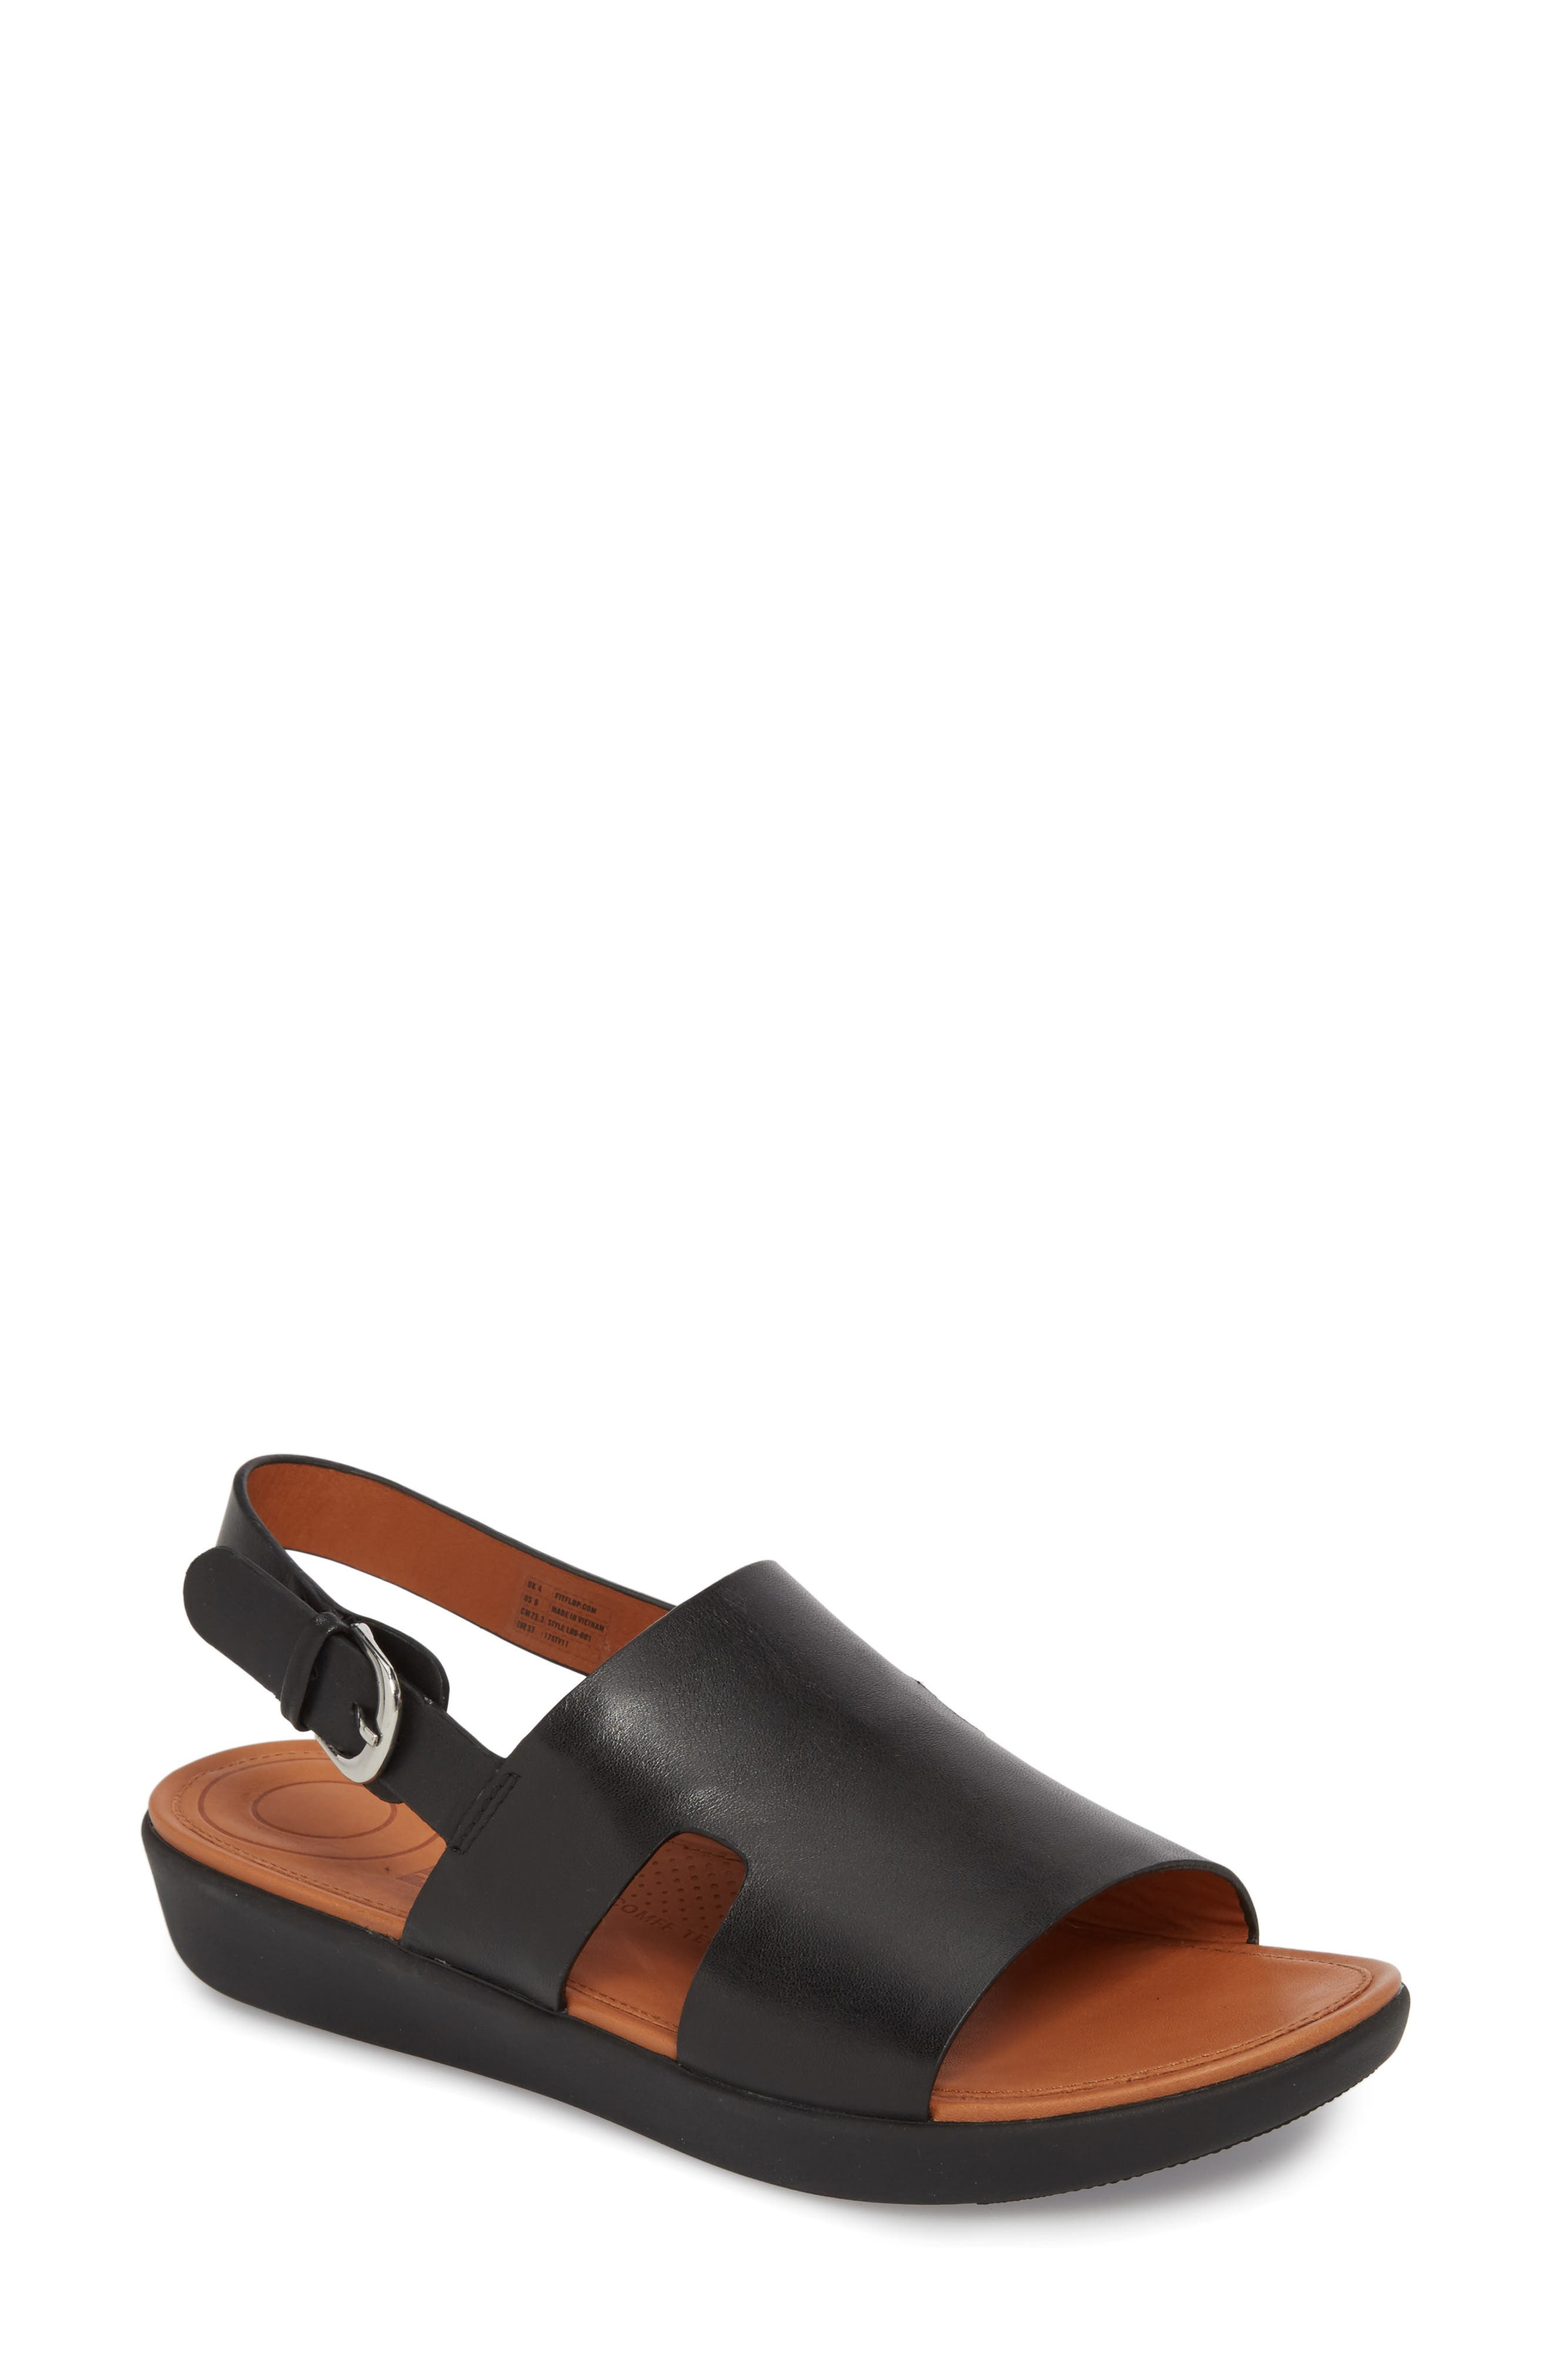 H-Bar Slingback Sandal,                             Main thumbnail 1, color,                             Black Leather